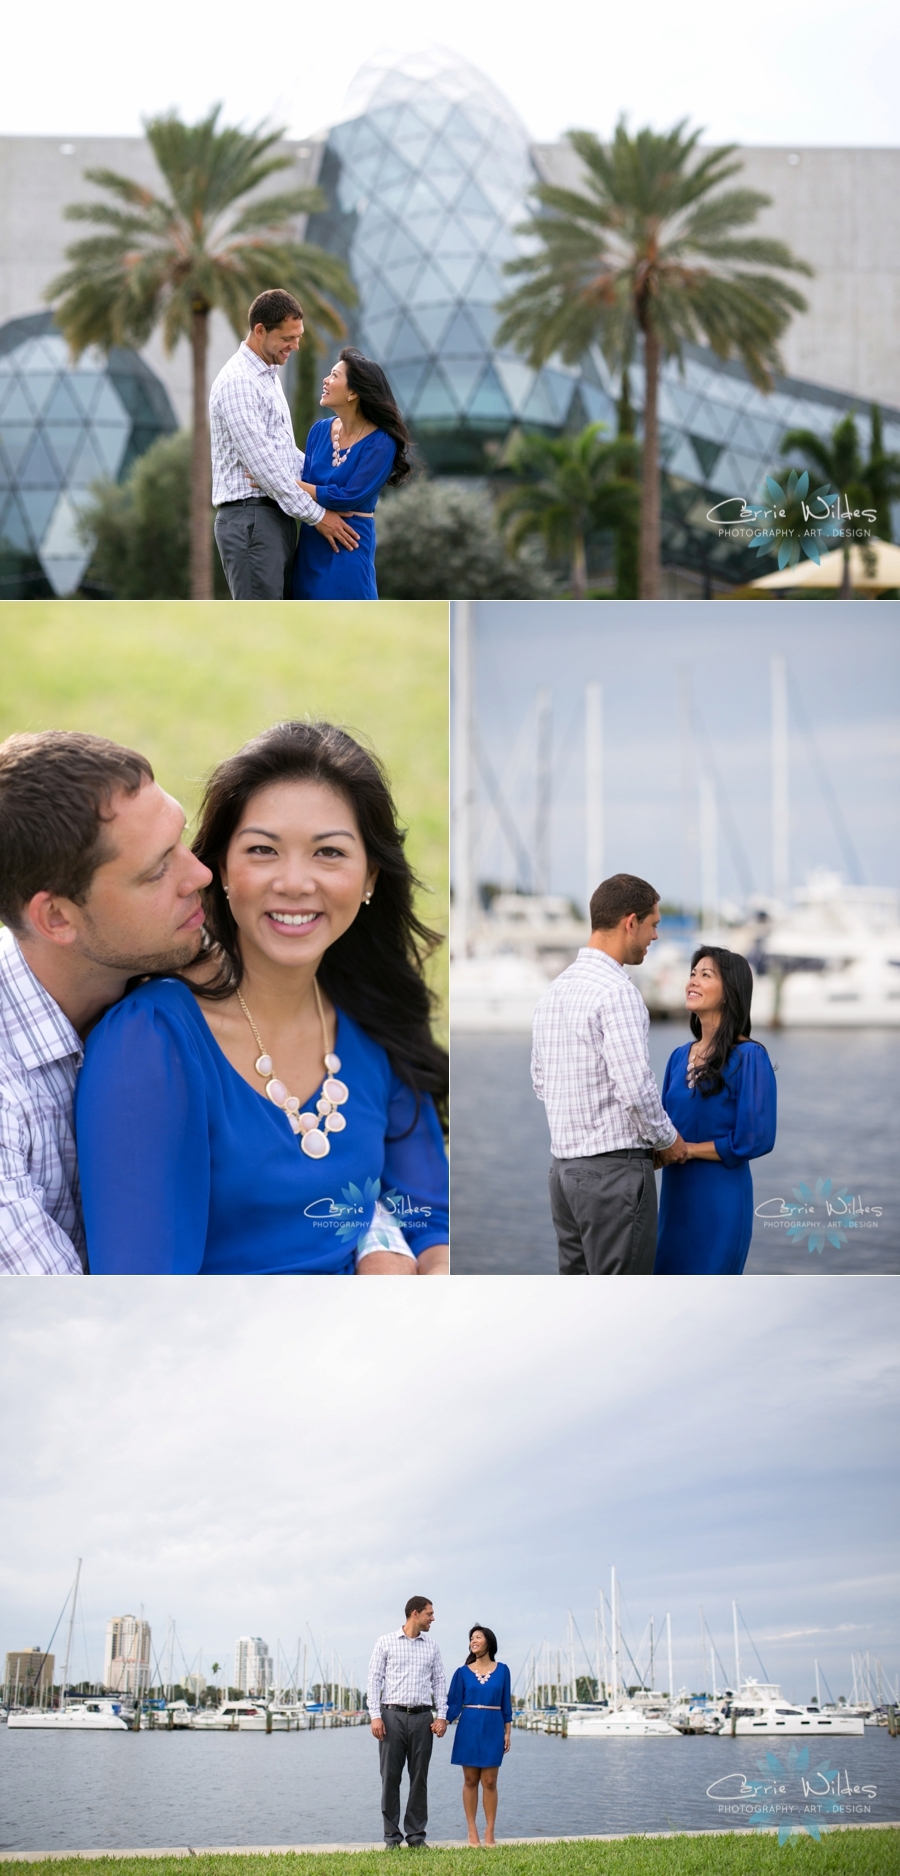 10_27_15 St. Petersburg Engagement Session_0001.jpg